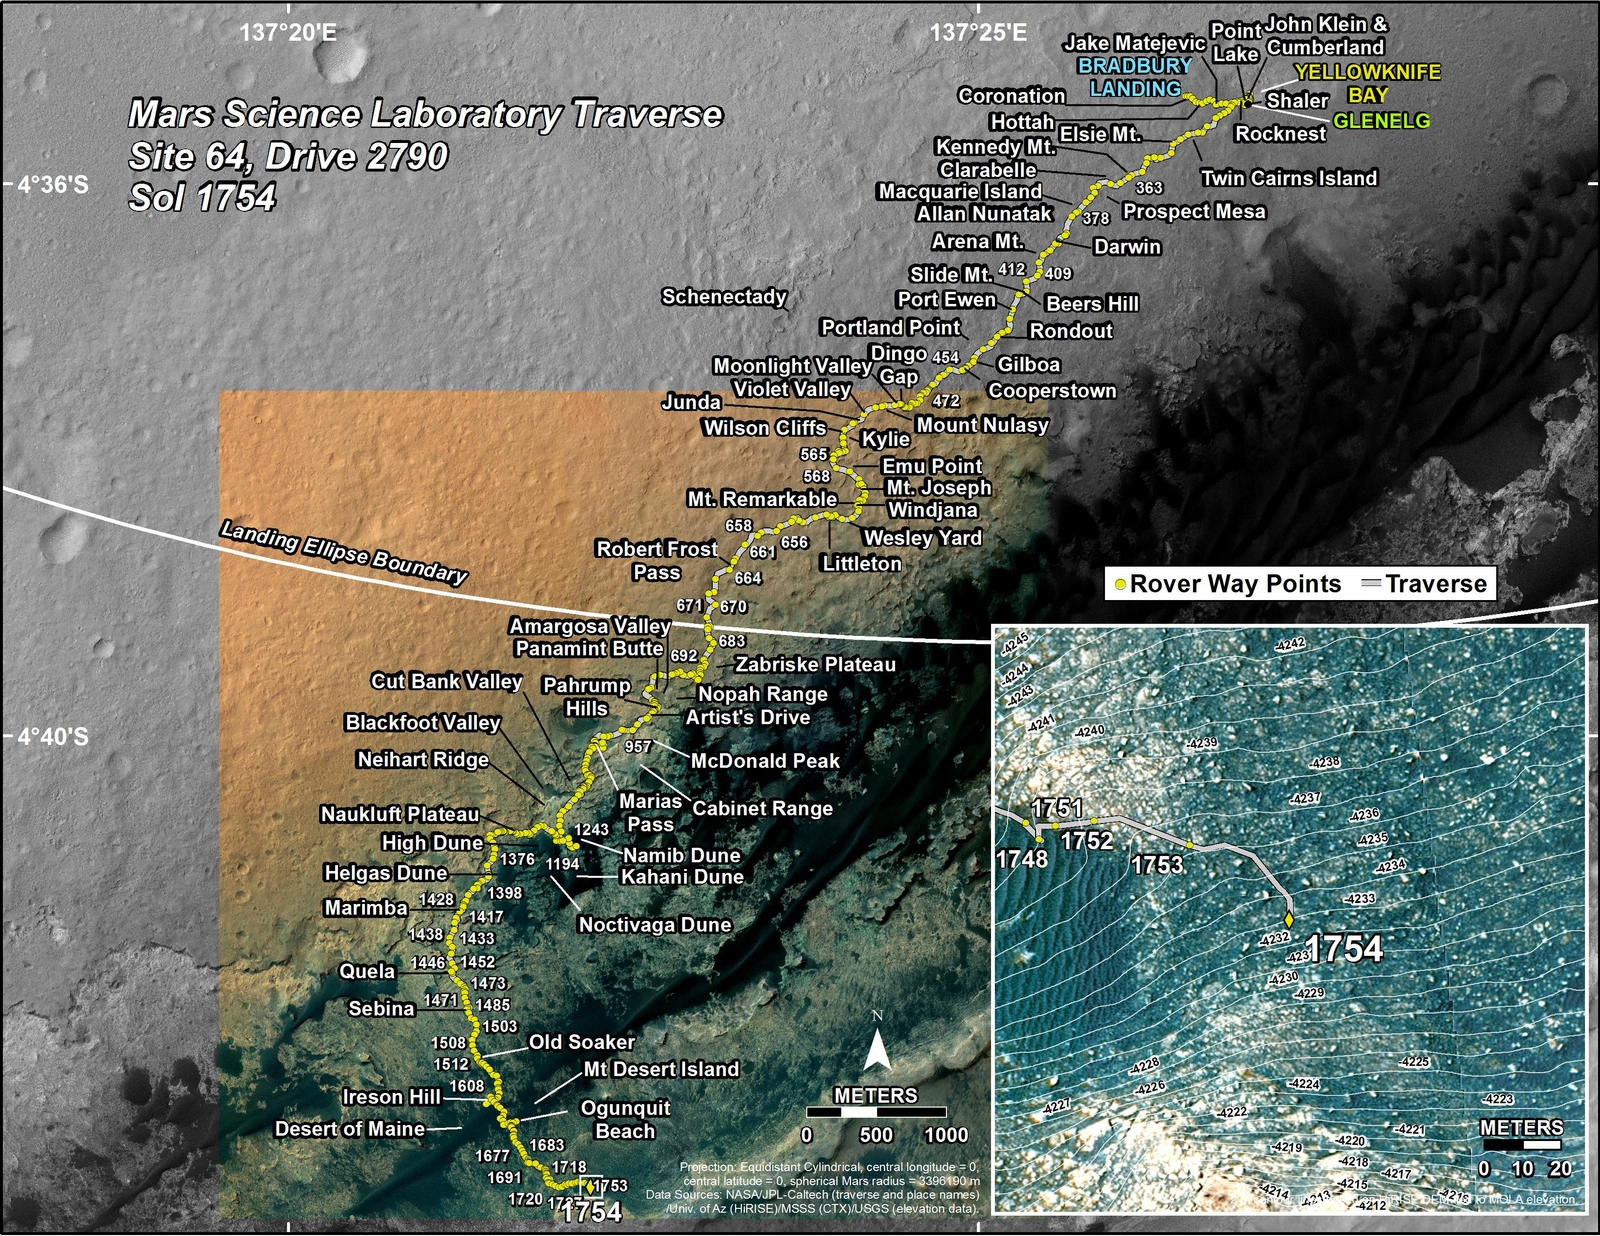 This map shows the route driven by NASA's Mars rover Curiosity through the 1754 Martian day, or sol, of the rover's mission on Mars (July 13, 2017).